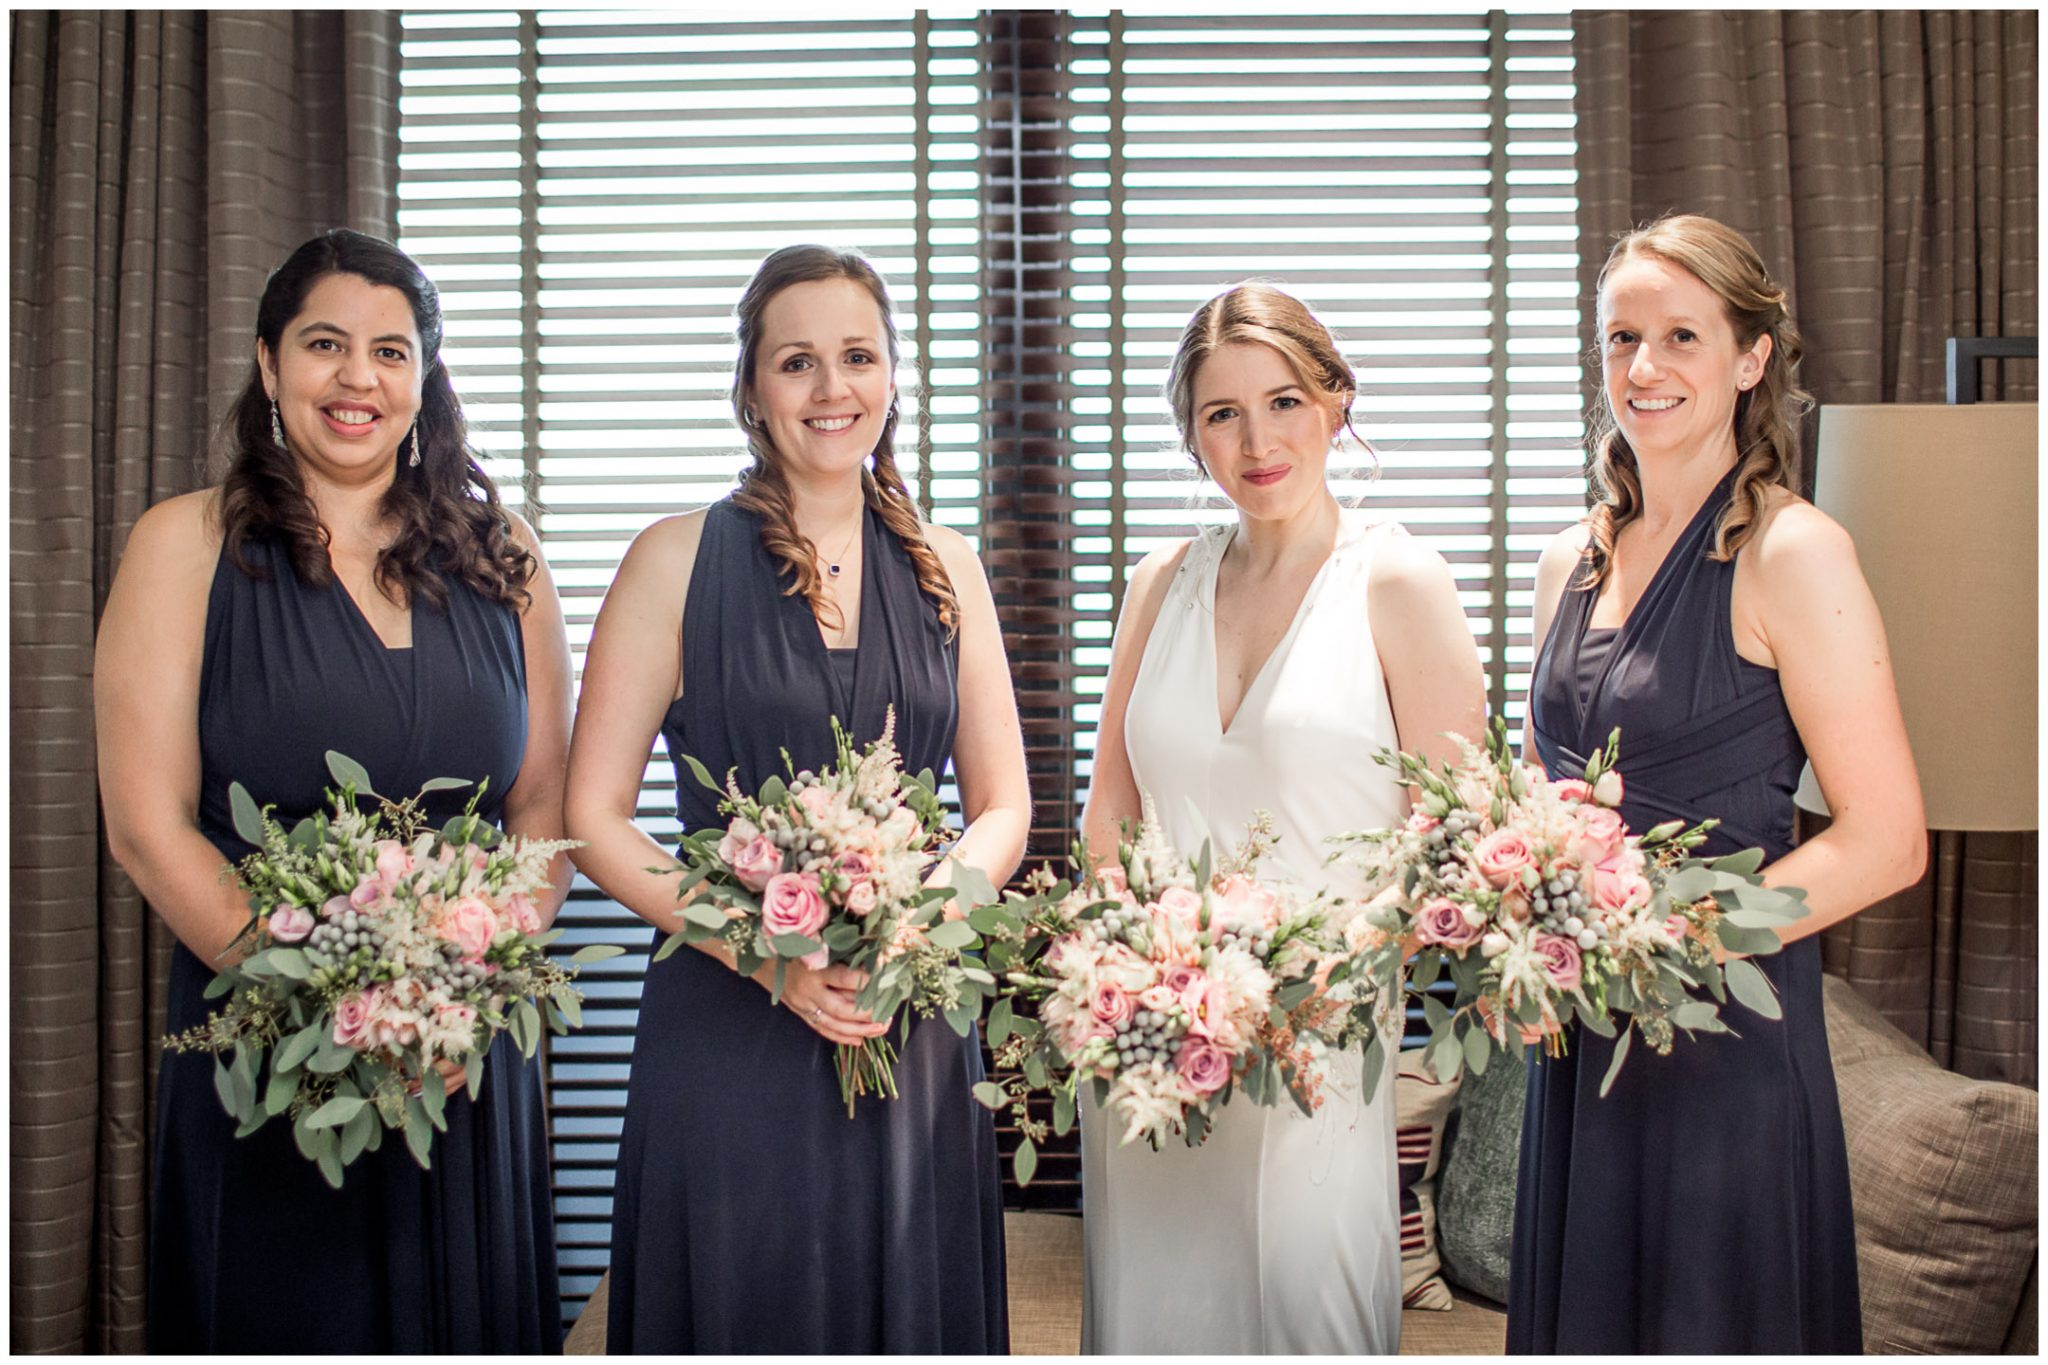 Bride with bridesmaids, dressed and ready for teh wedding